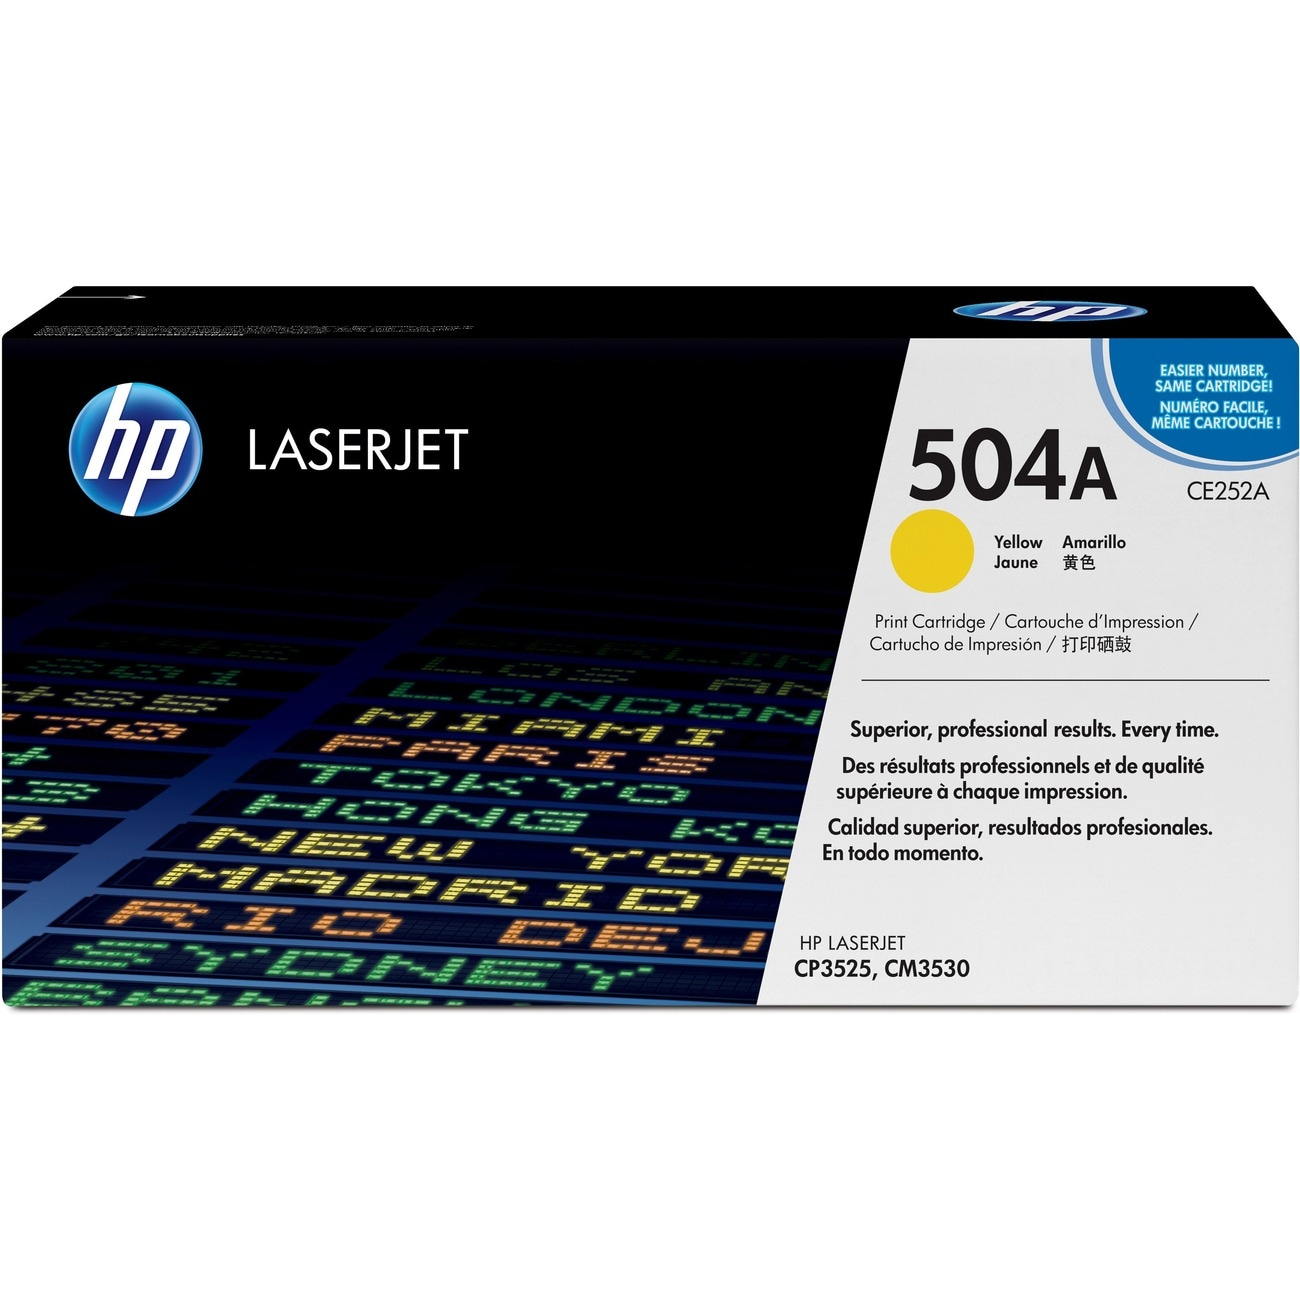 HP 504A Yellow Toner Cartridge